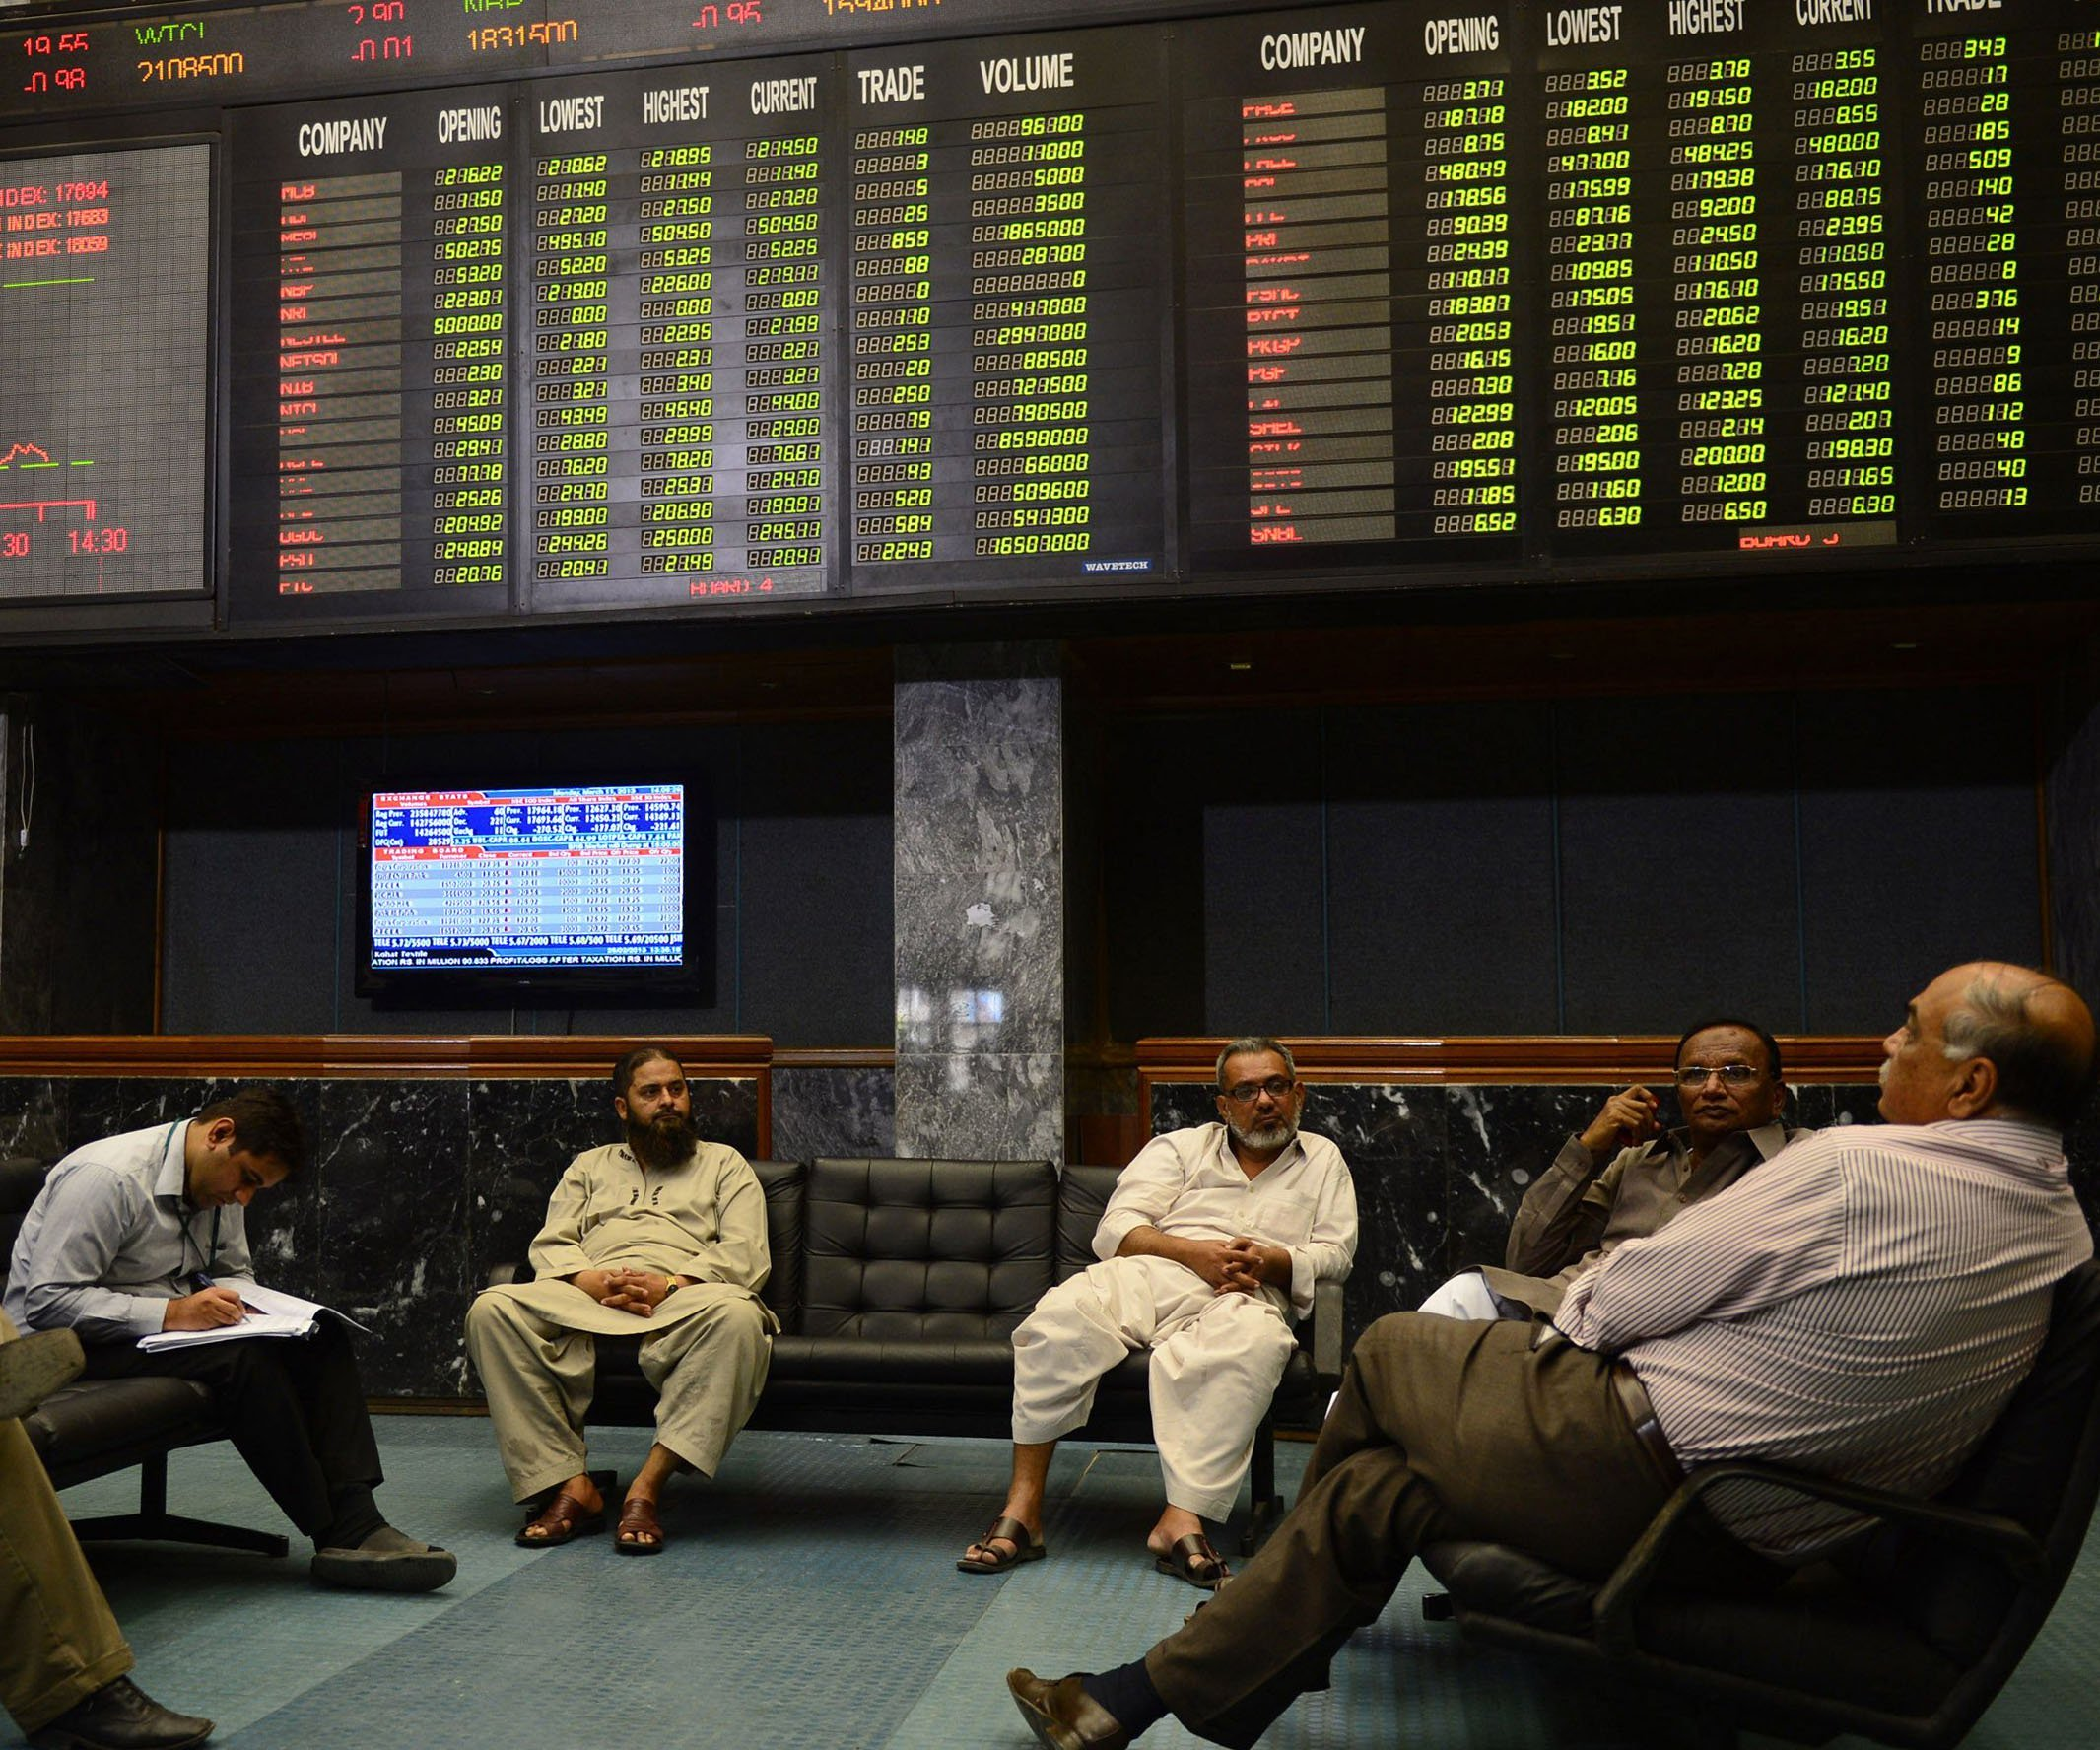 benchmark kse 100 index rises 83 94 points to close at 42 994 96 photo afp